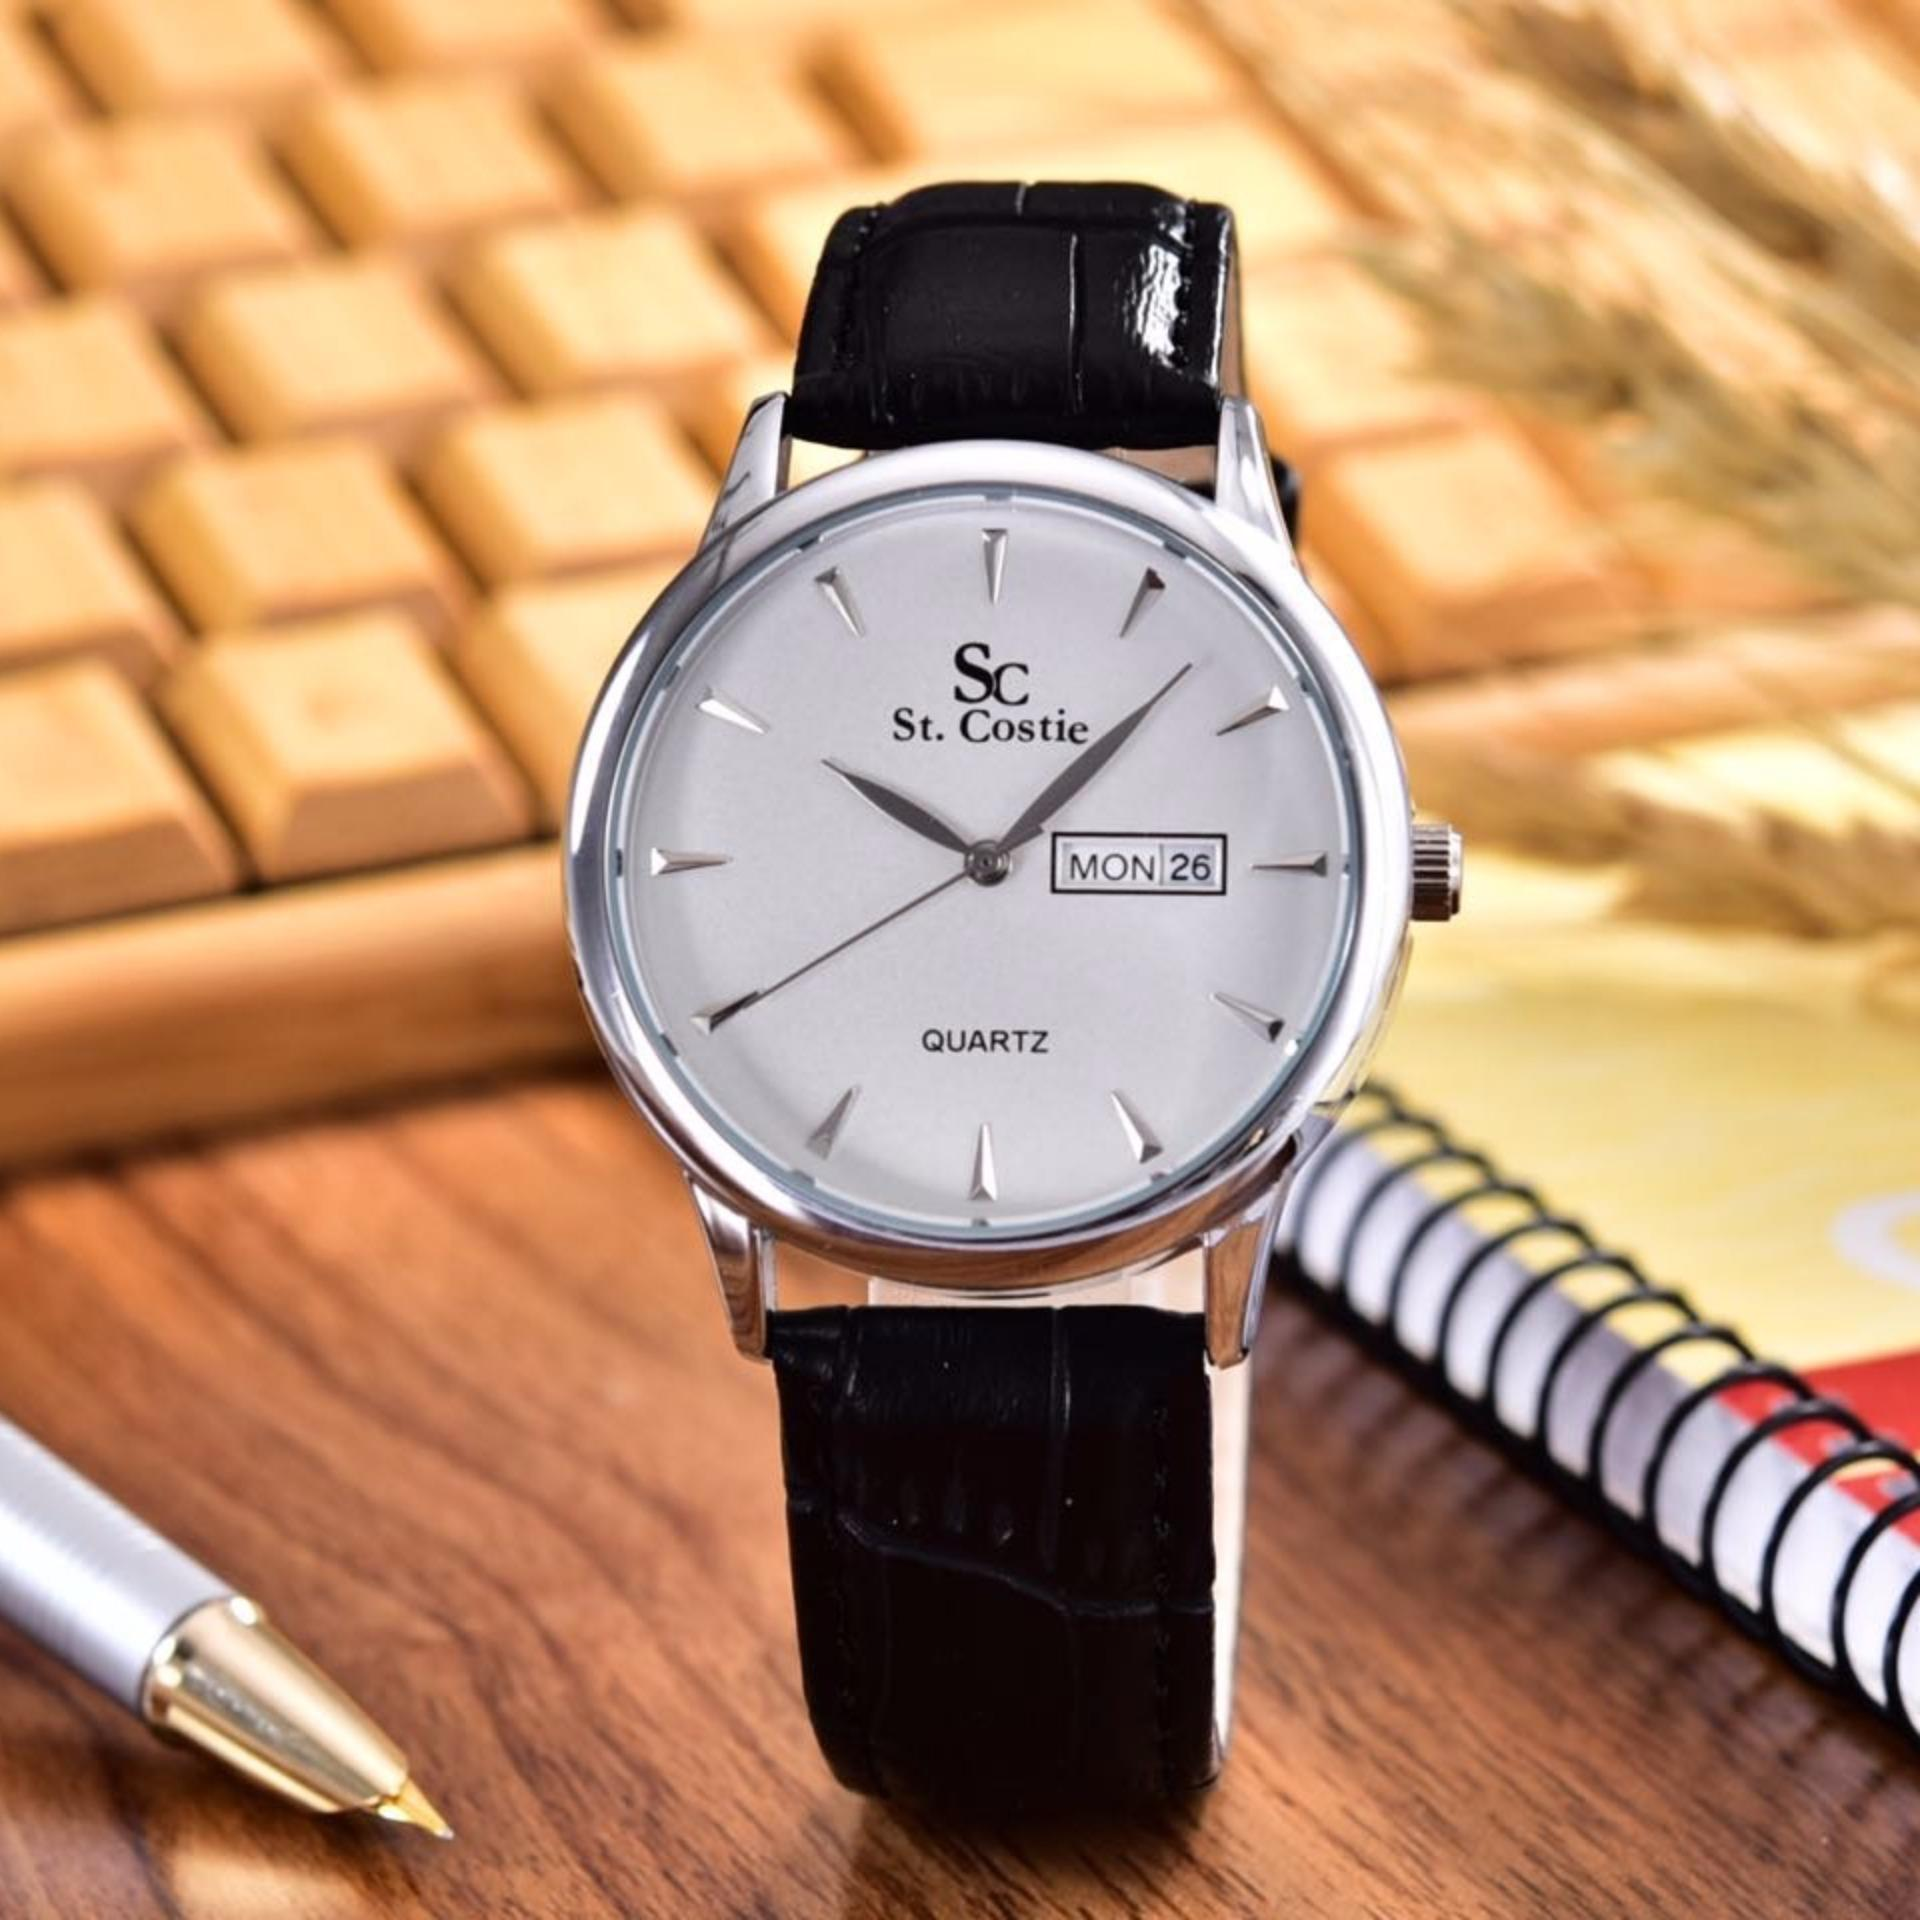 Saint Costie  Original Brand, Jam Tangan Wanita - Body Silver - White Dial – Black Leather Strap - SC-JK-8009L-T/H-SW-Black Leather